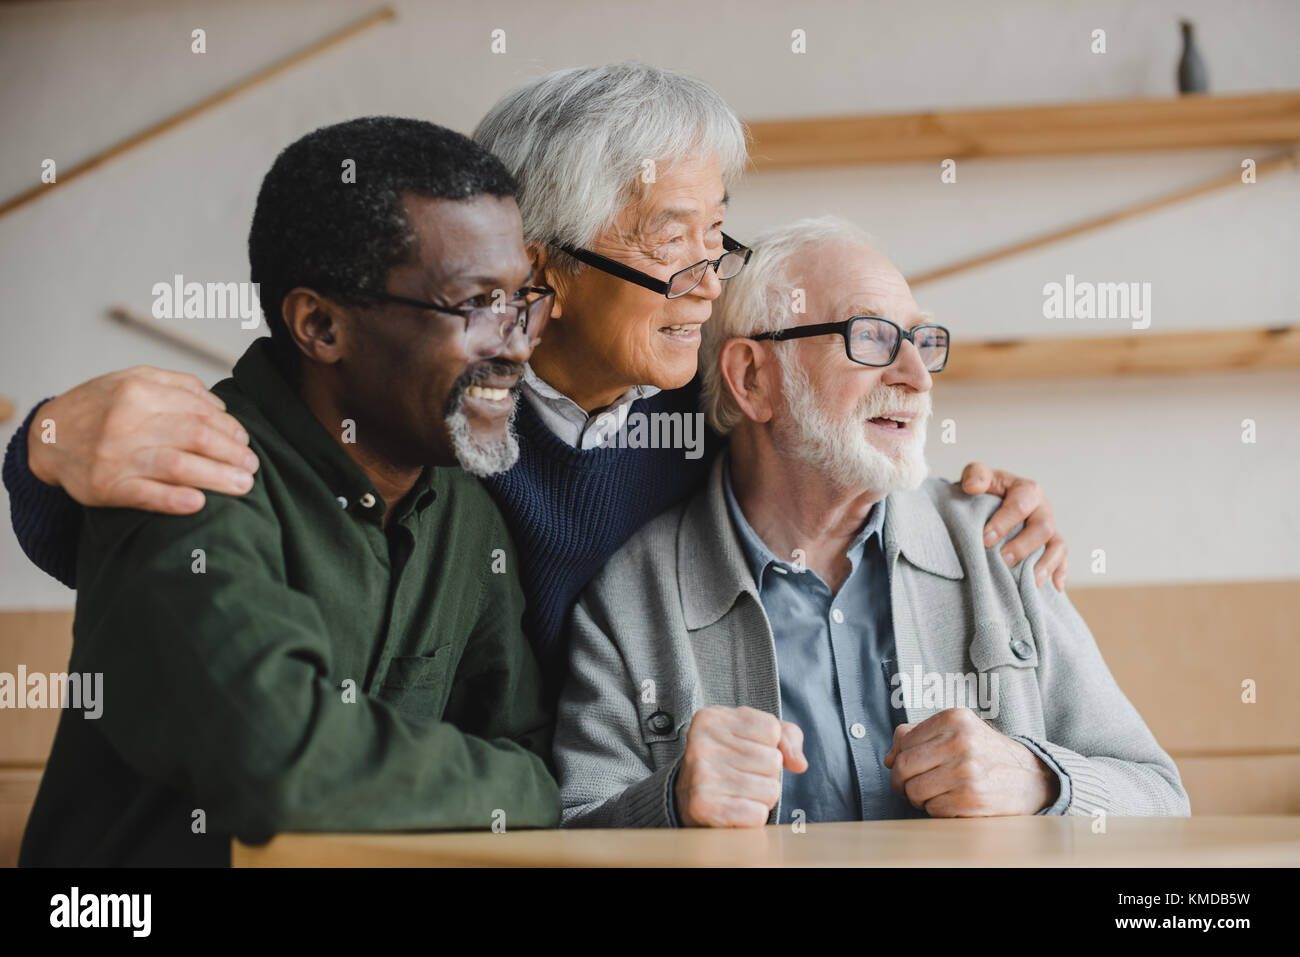 senior friends embracing and looking away - Stock Image